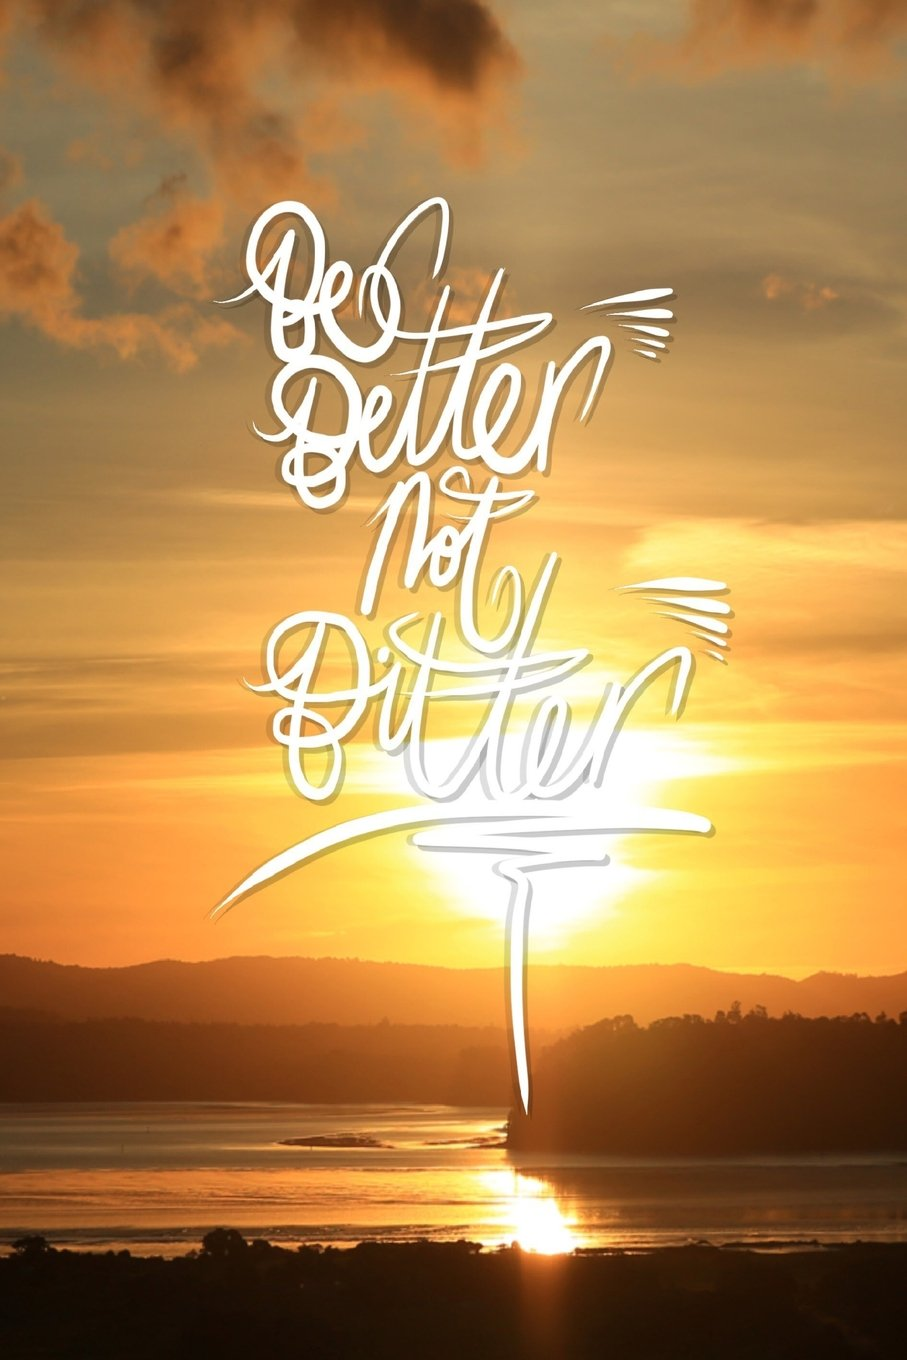 Download Be Better not Bitter: 6x9 Inch Lined Journal/Notebook - The choice is yours! - Gold, Sunset, River, Nature, Landscape, Calligraphy Art with photography, Gift idea pdf